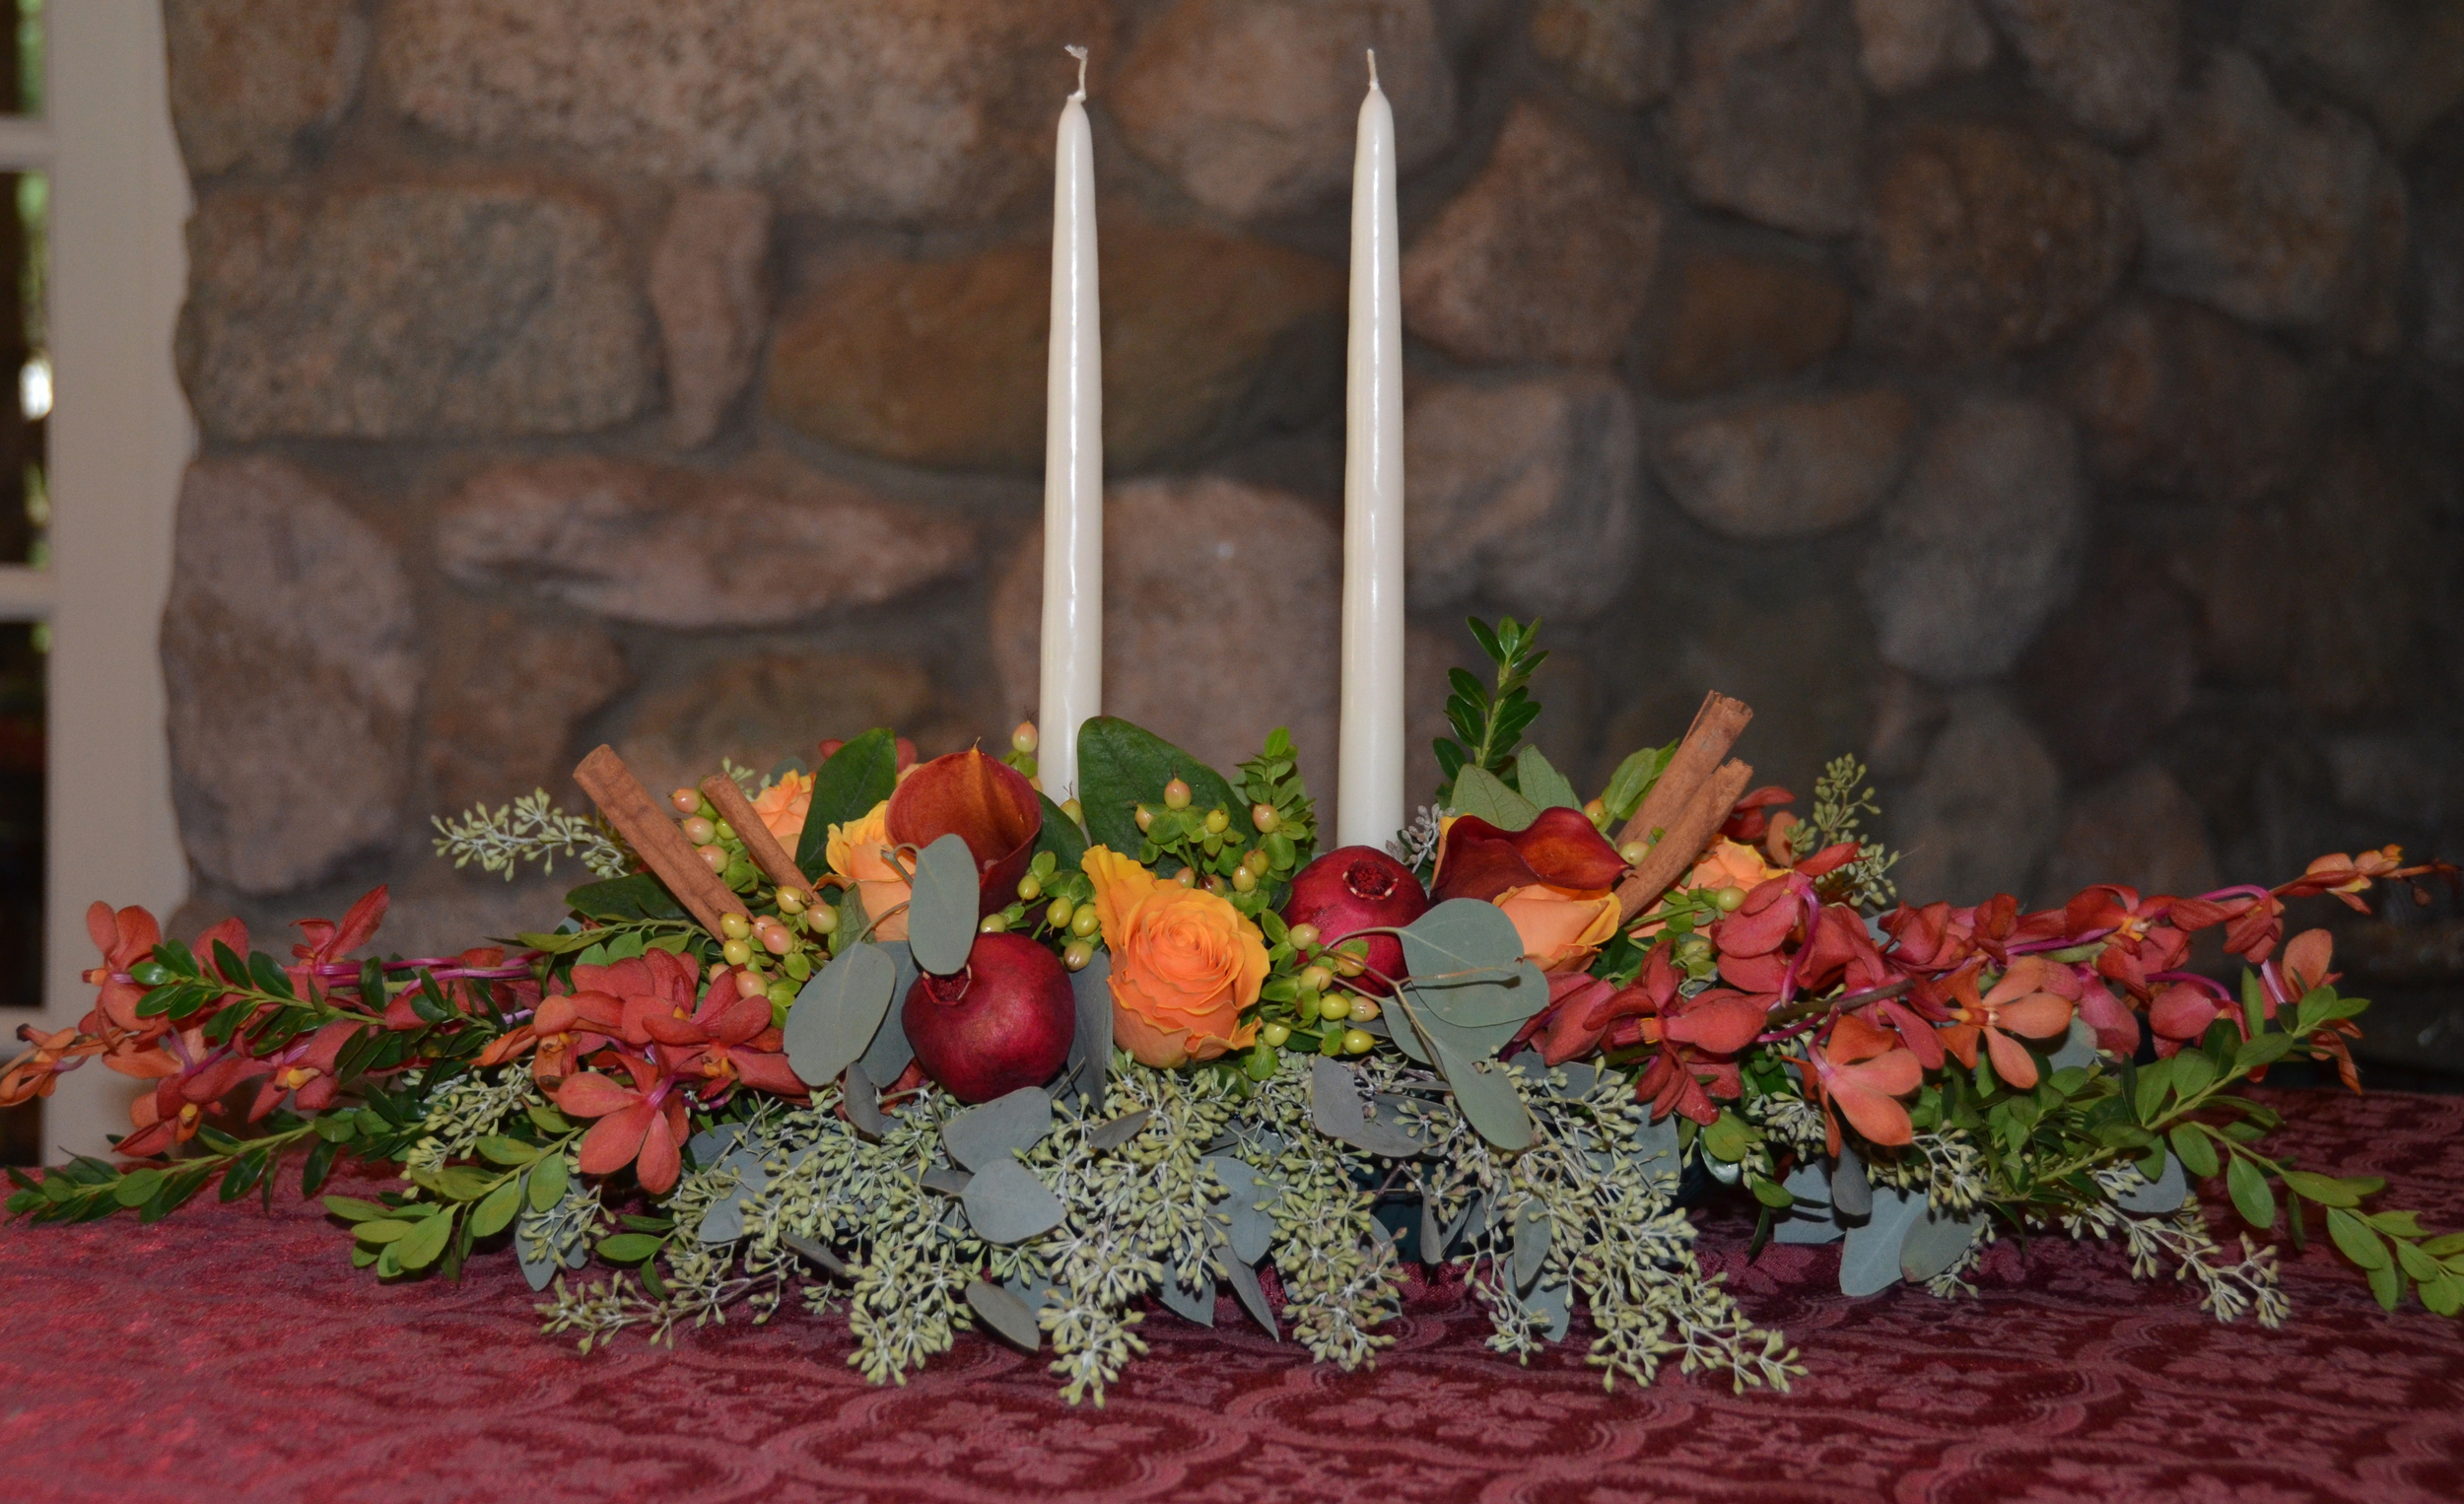 Picture this on your Thanksgiving table. Prices starting at $50.00